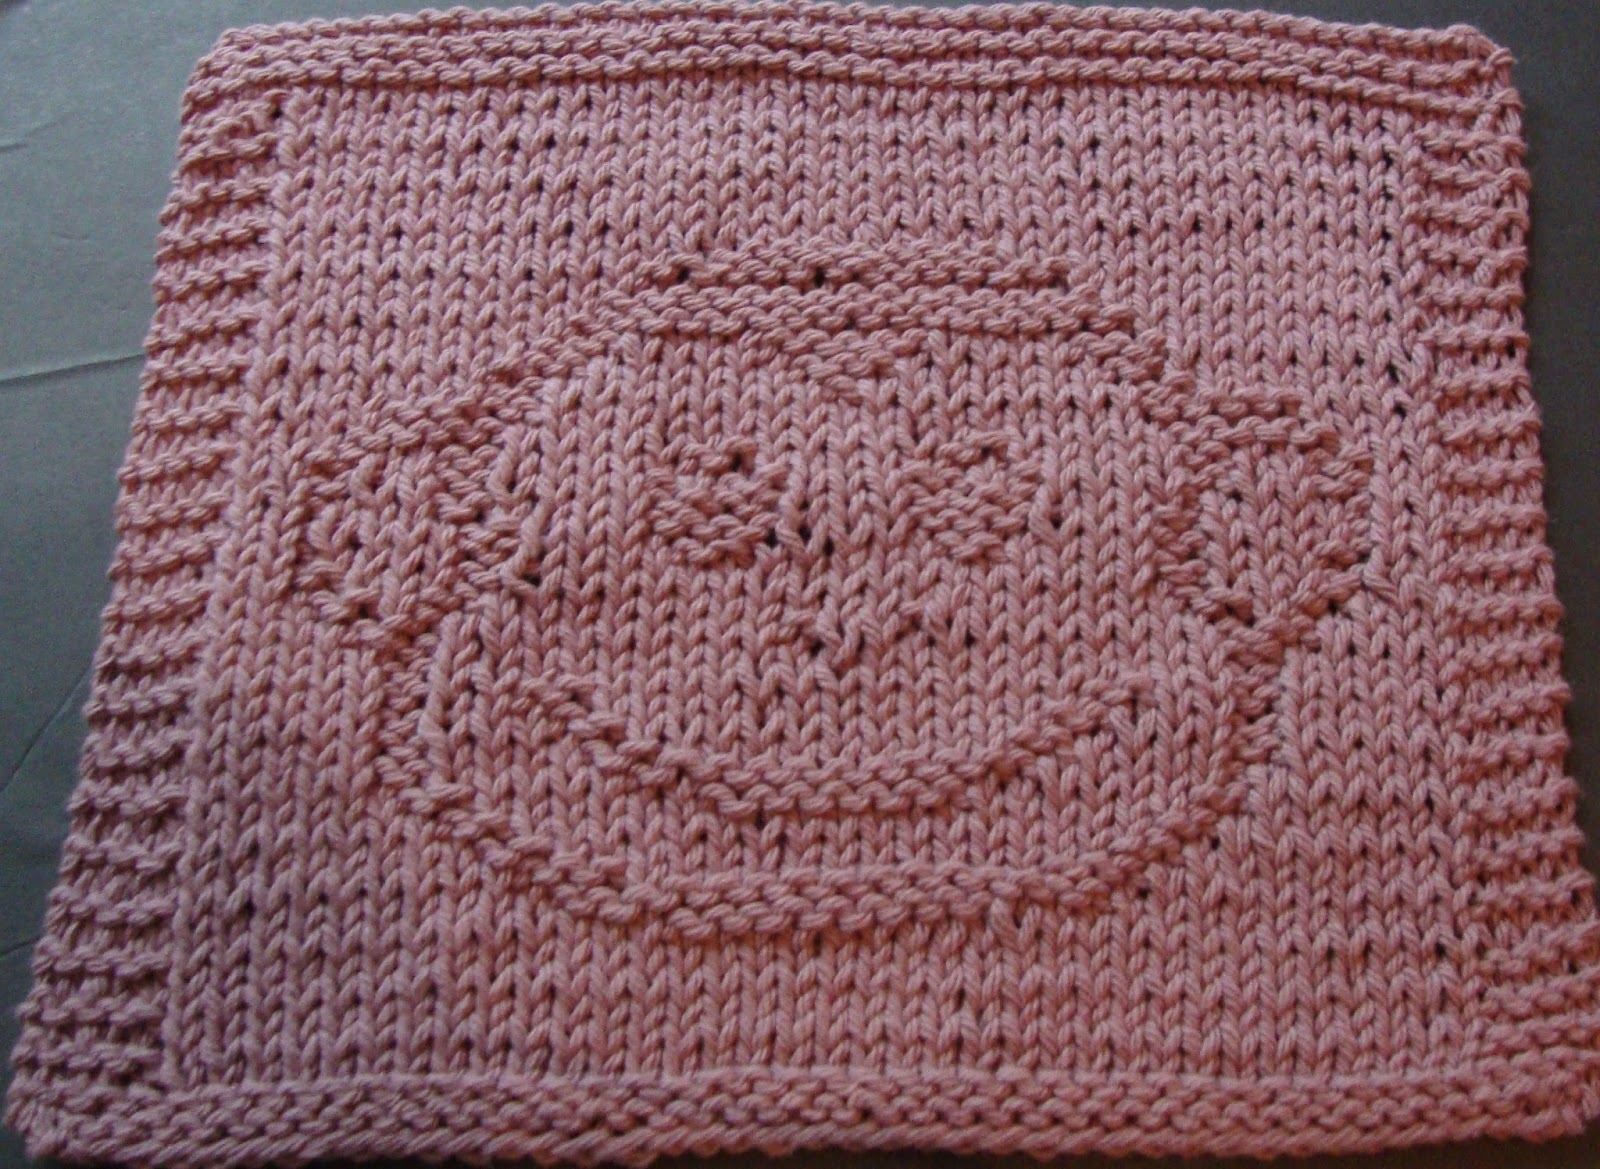 DigKnitty Designs: Another Monkey Face Knit Dishcloth Pattern